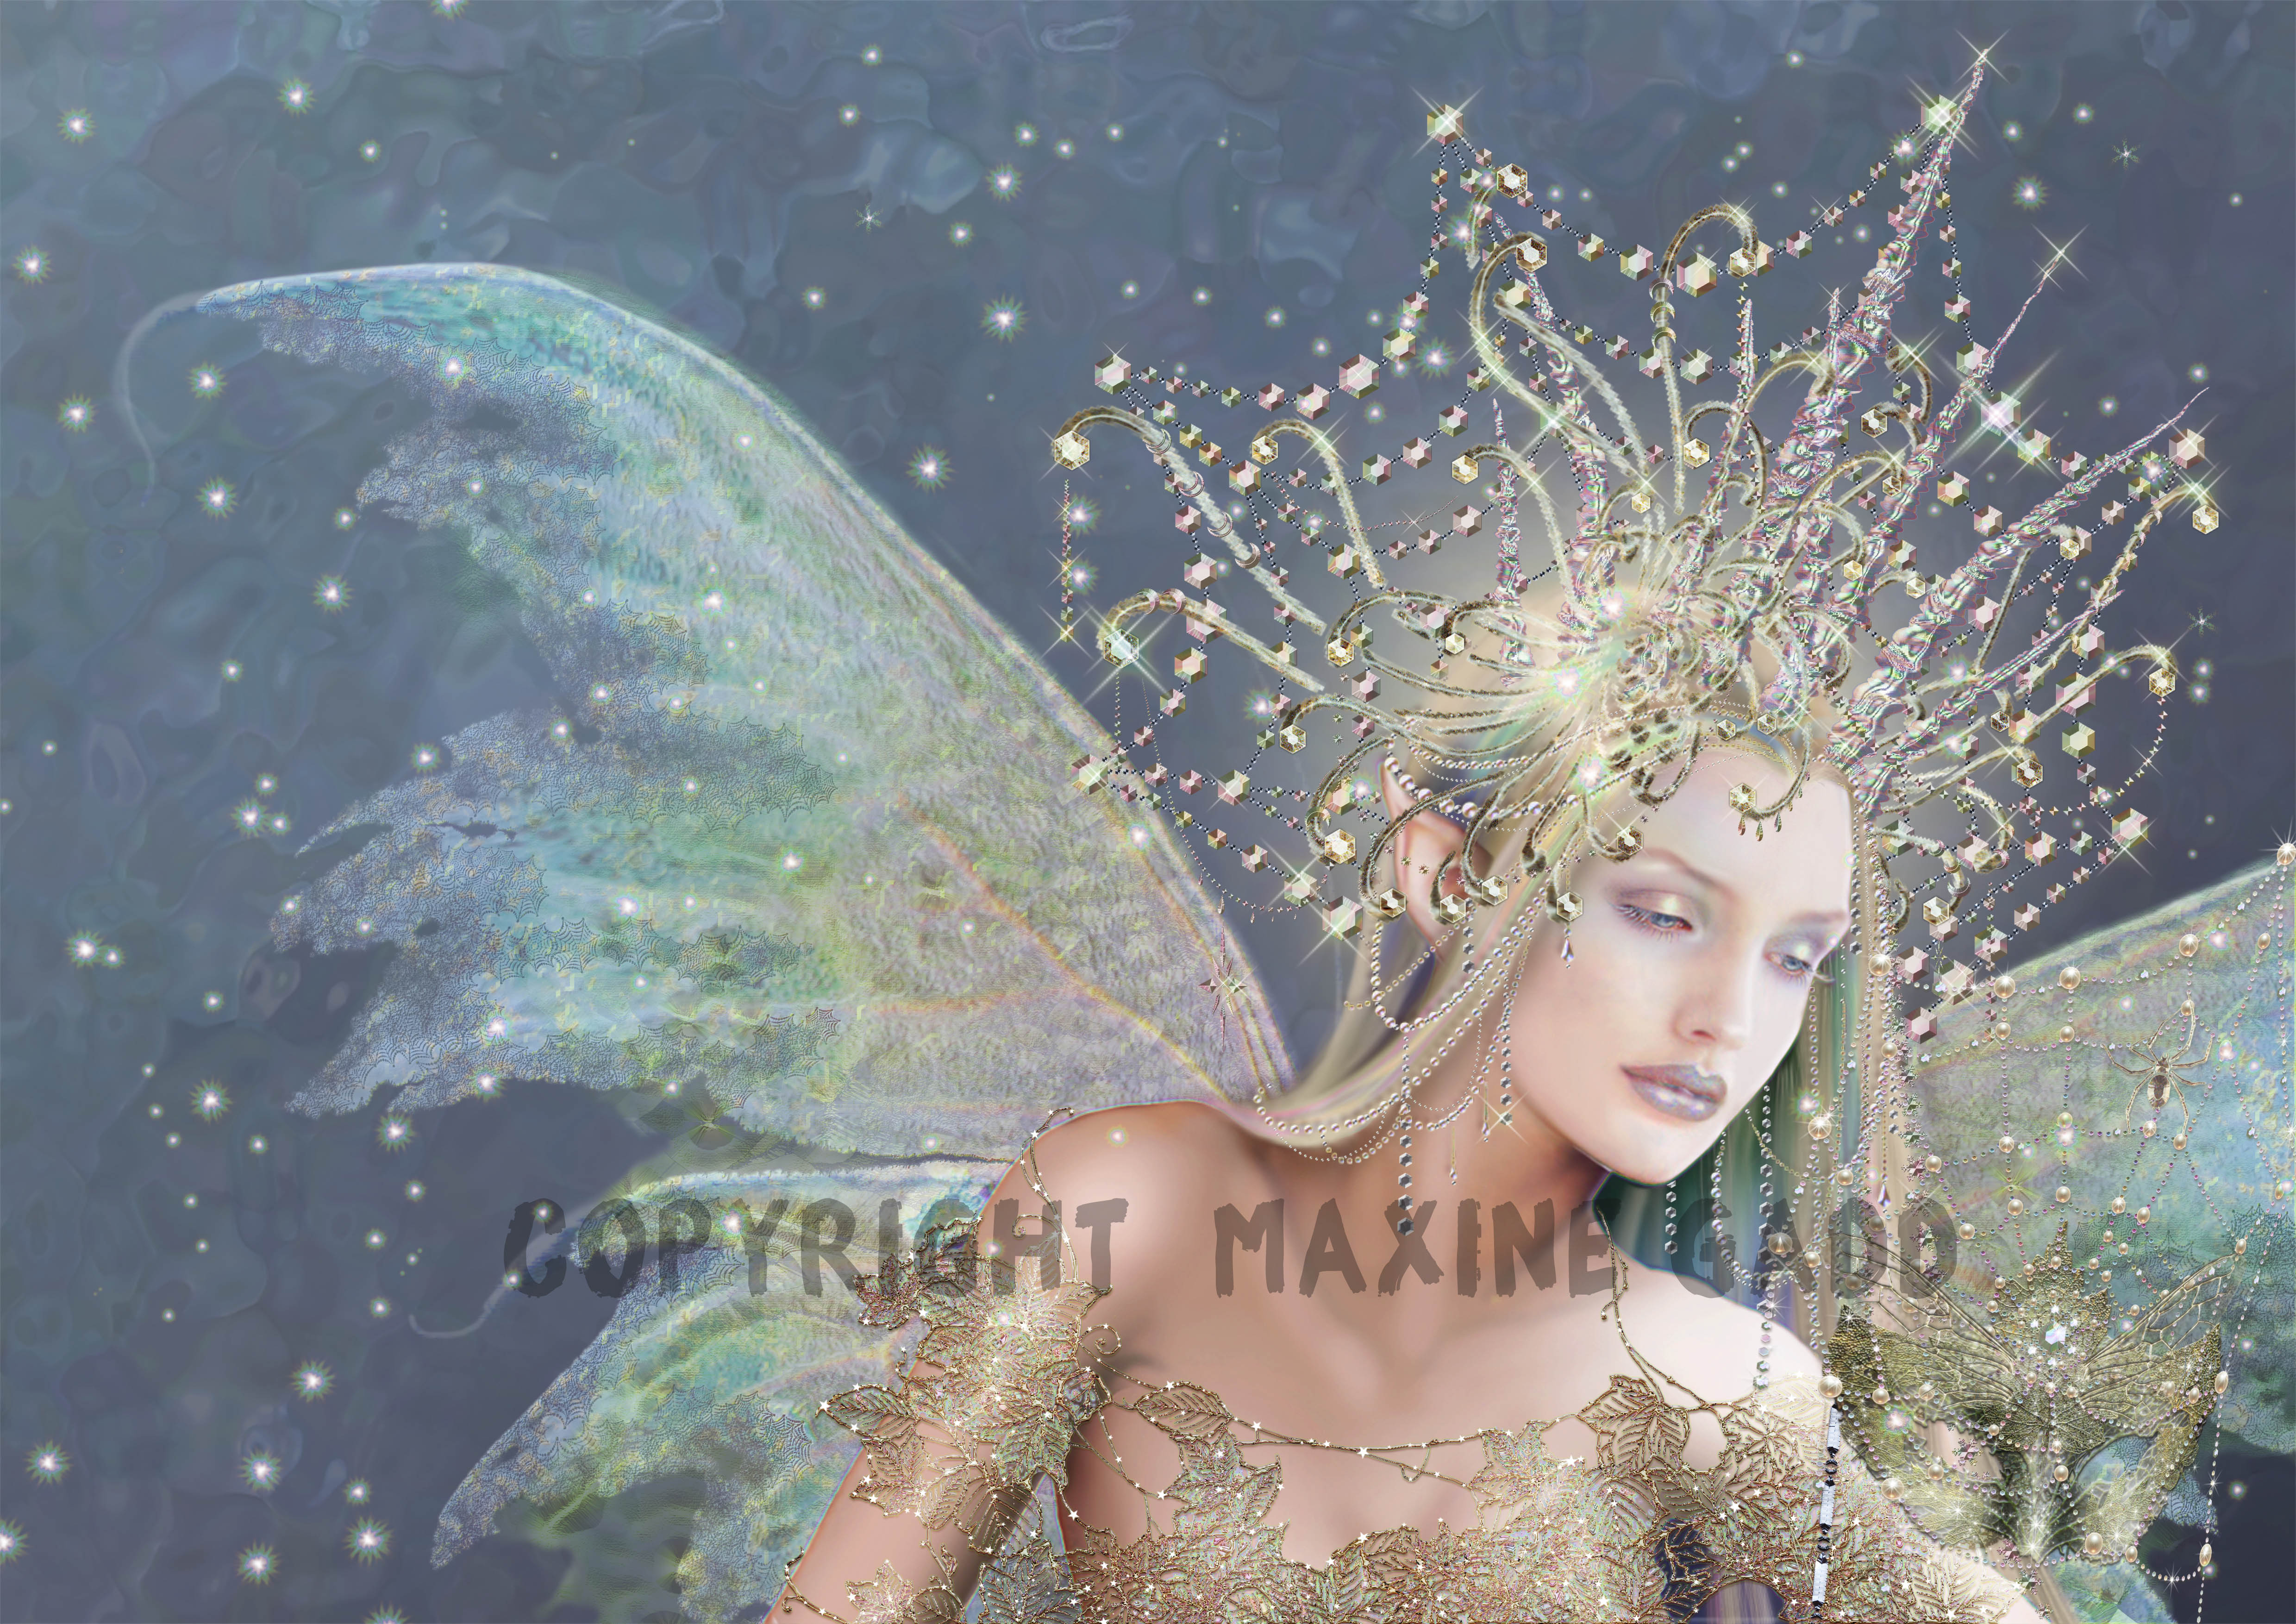 Ice crystal masque copyright